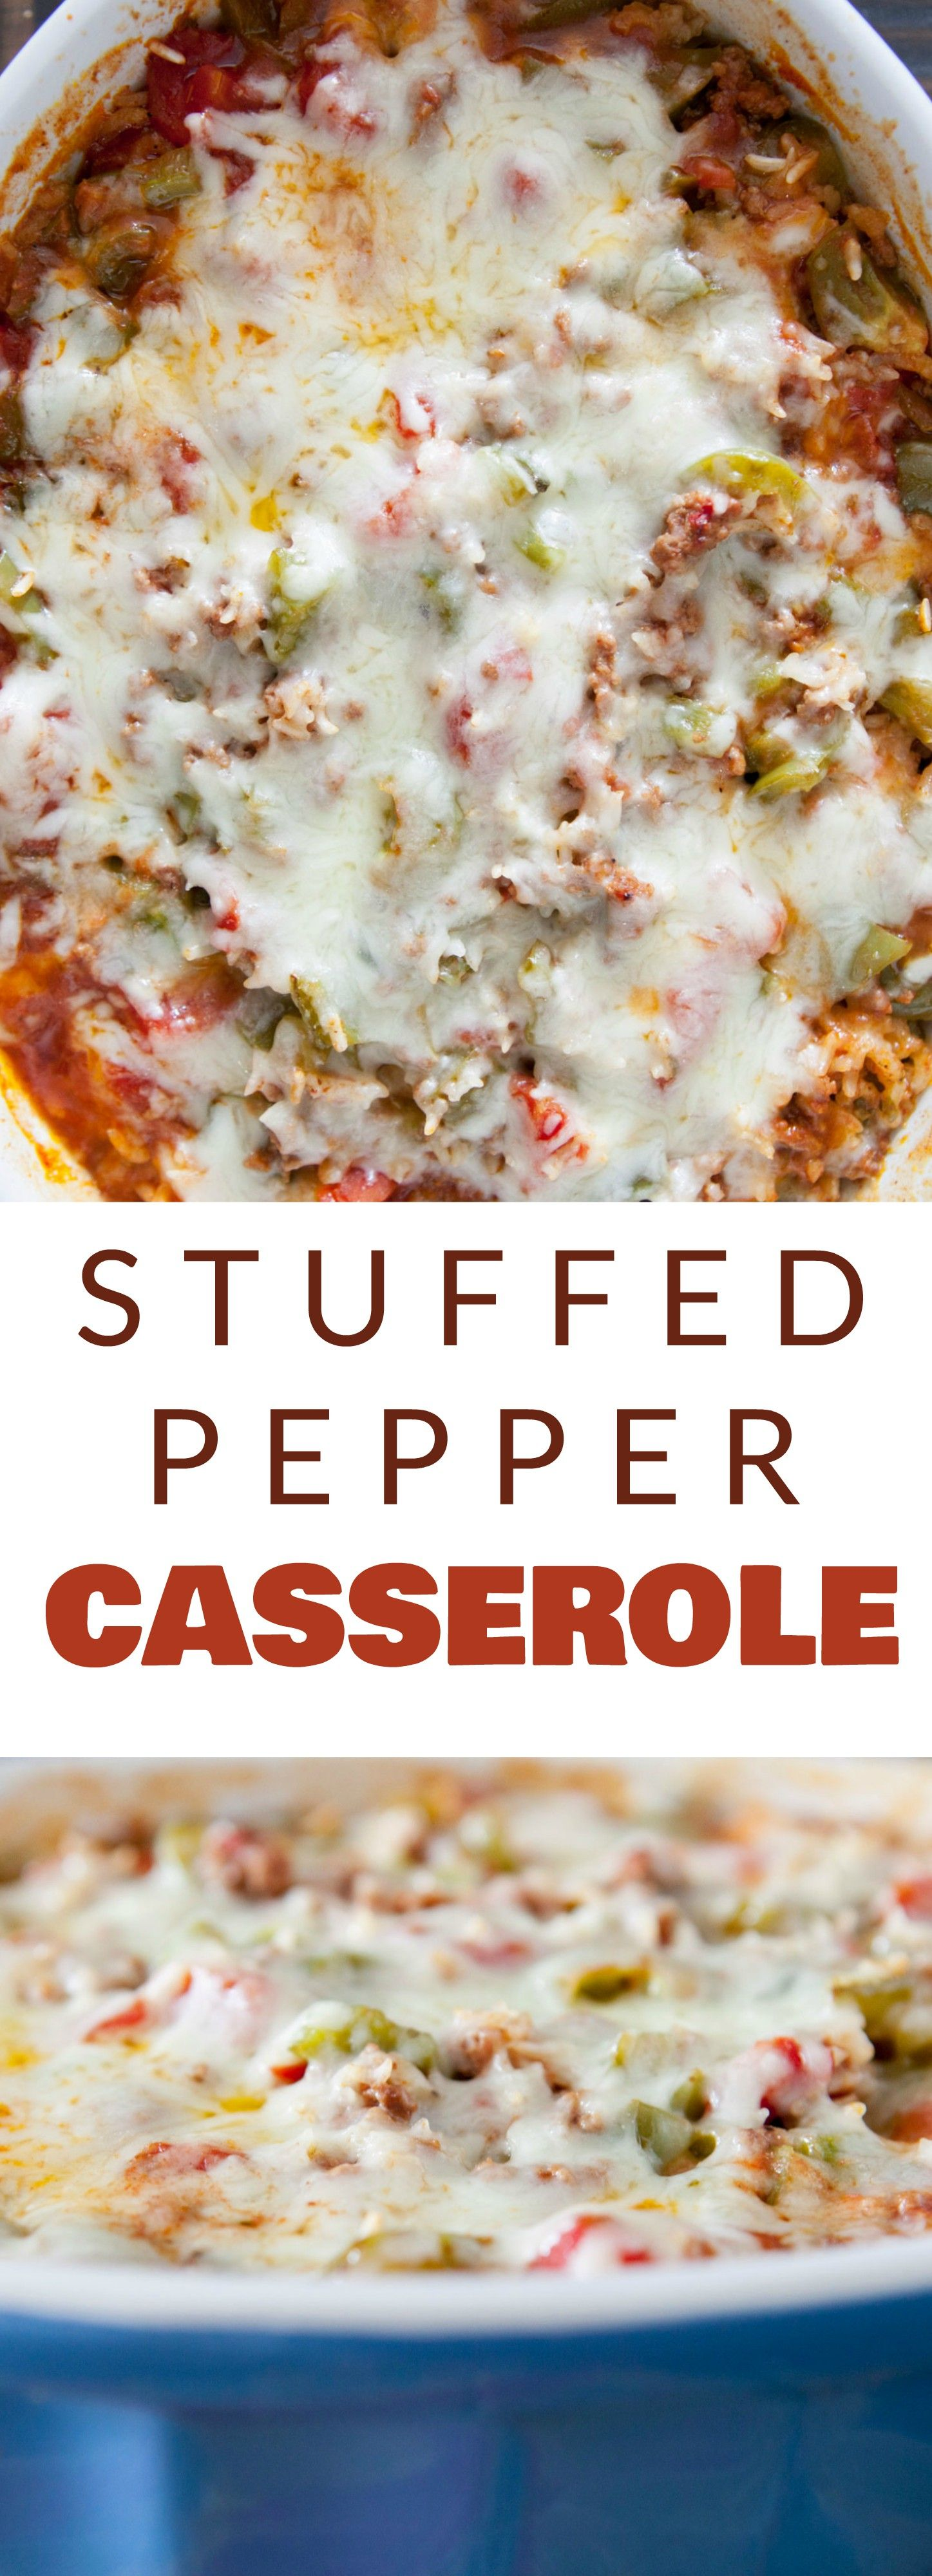 Easy Stuffed Pepper Casserole Is Baked In The Oven For A Cheesy Dinner Meal This Dish Uses My Mother S Famous S Stuffed Peppers Easy Casserole Recipes Recipes